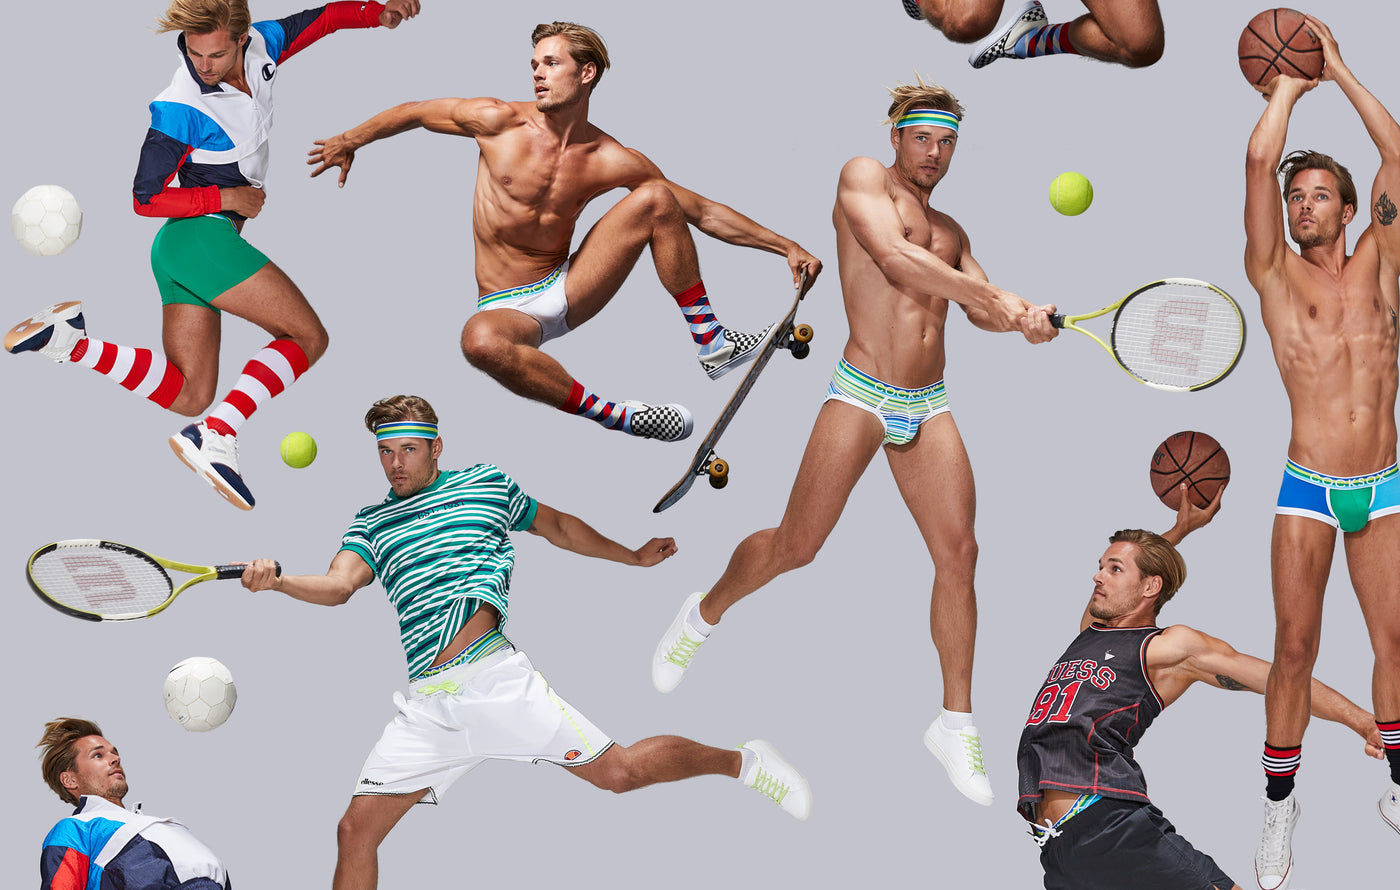 Lifestyle editorial image of the Freshballs Underwear Collection